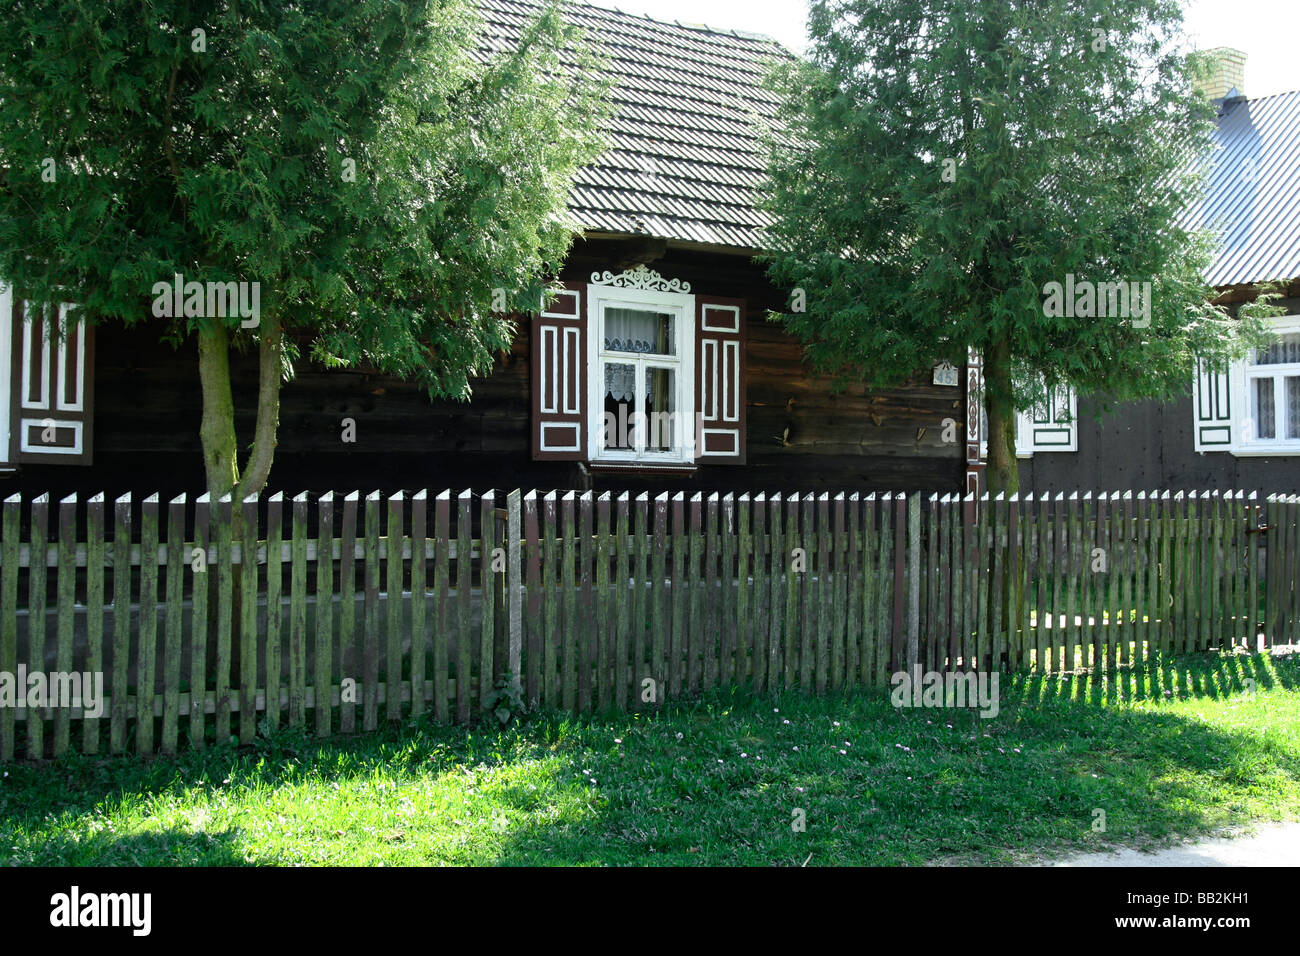 Traditional wooden house in Soce village, Poland - Stock Image